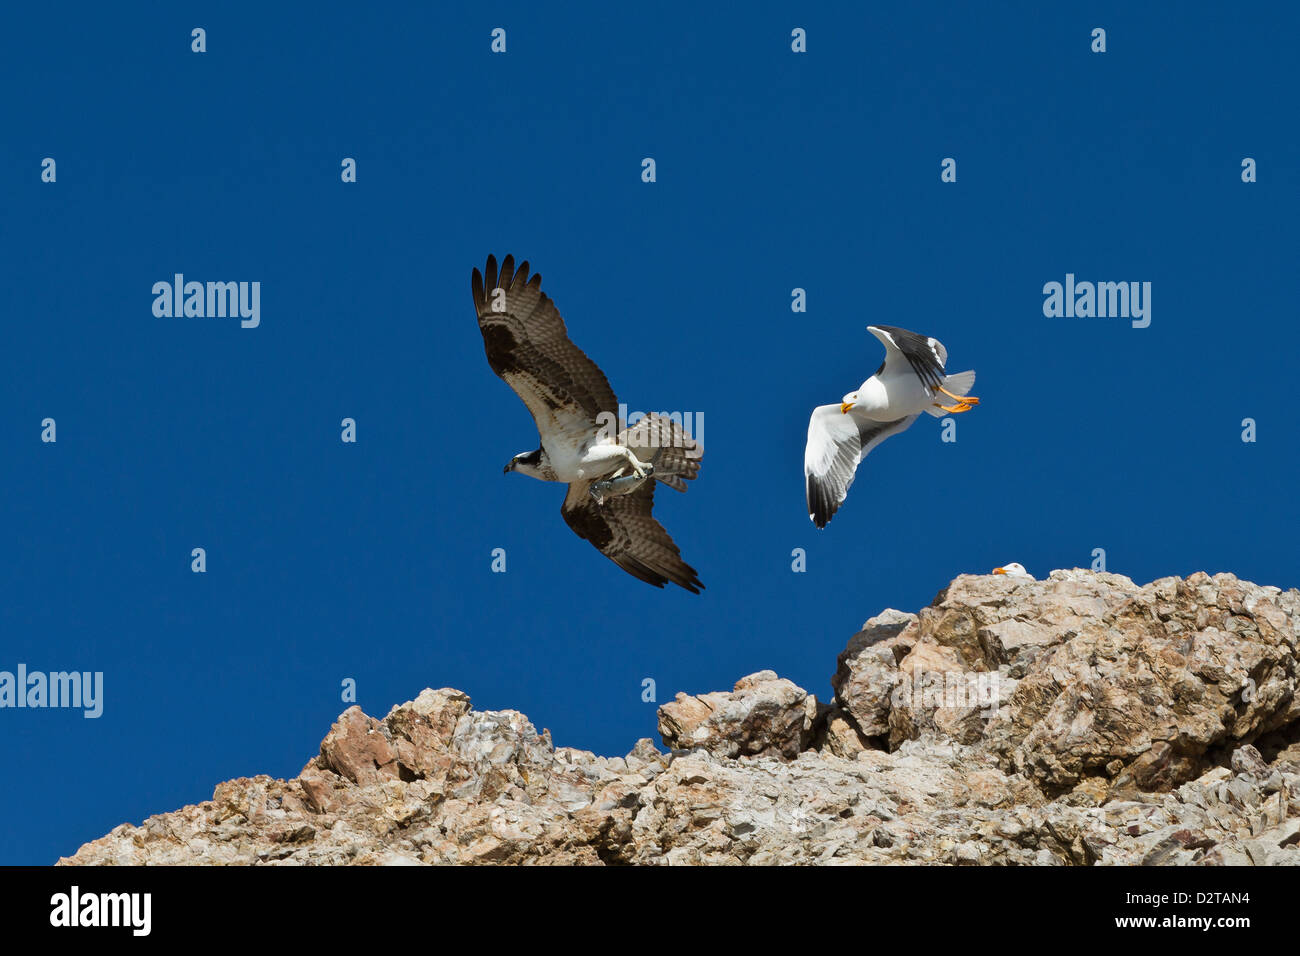 Adult osprey with fish, and yellow-footed gull, Gulf of California (Sea of Cortez) Baja California Sur, Mexico Stock Photo